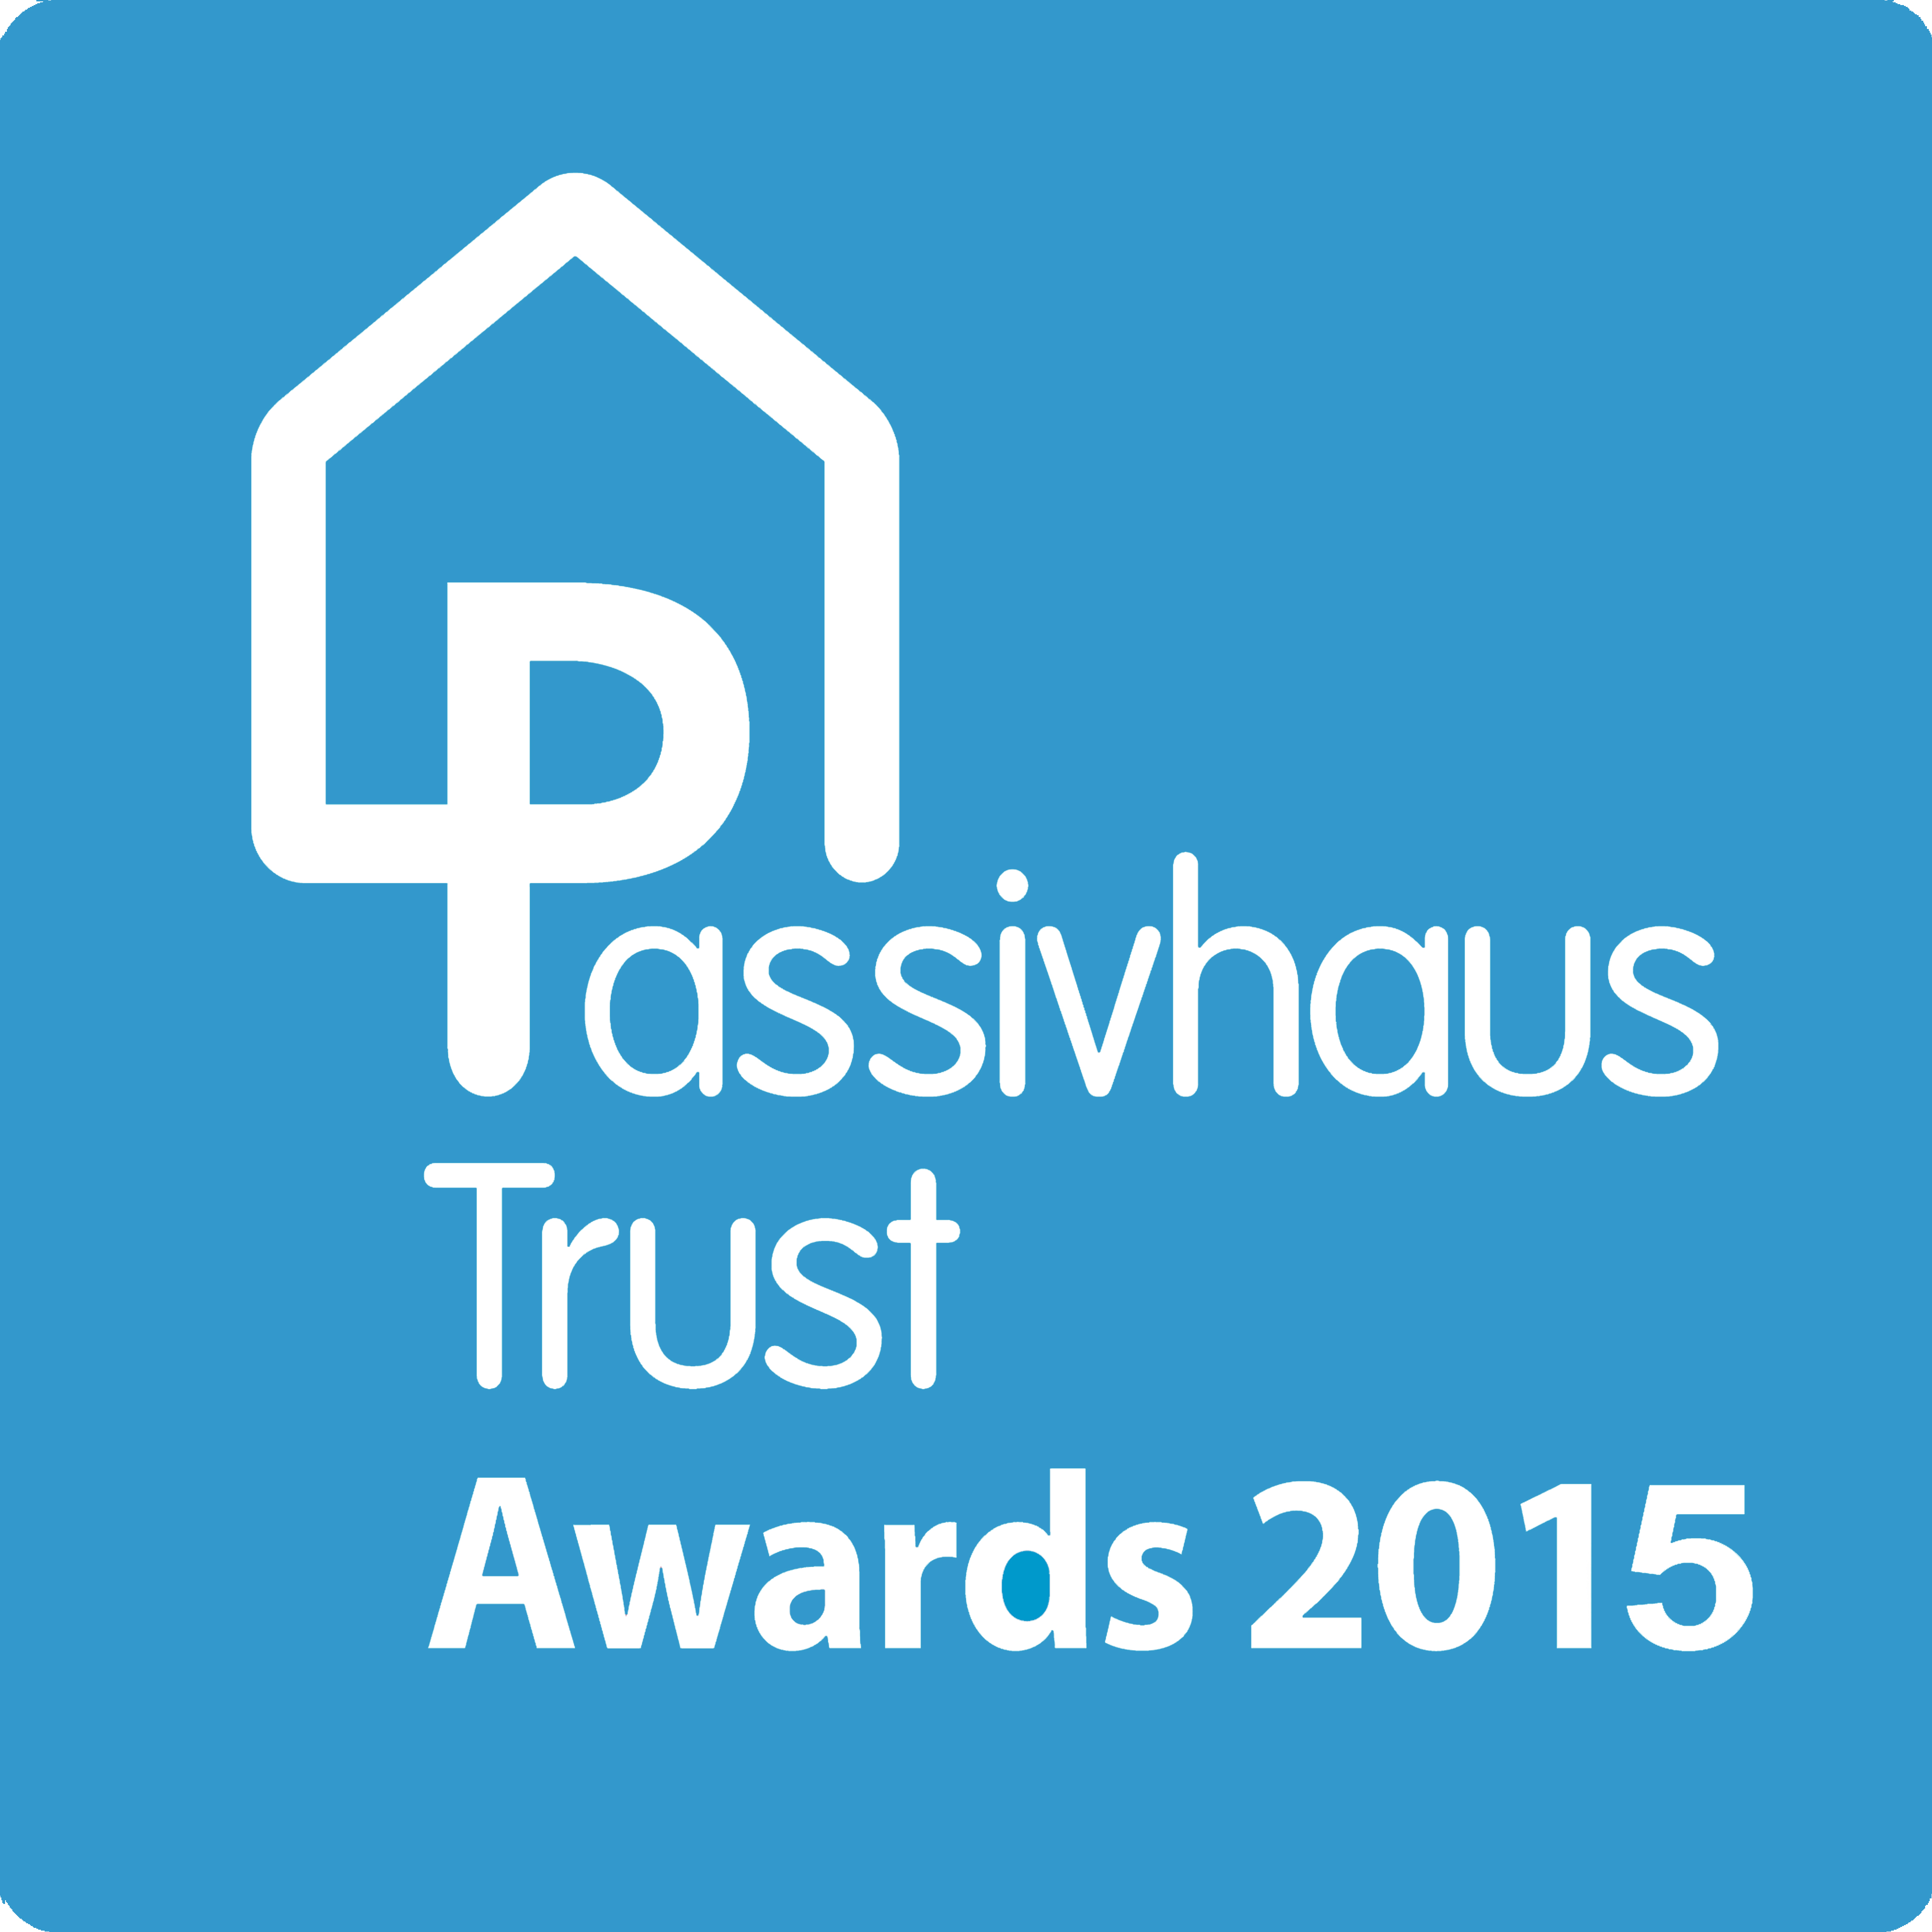 UK Passivhaus Awards logo 2015